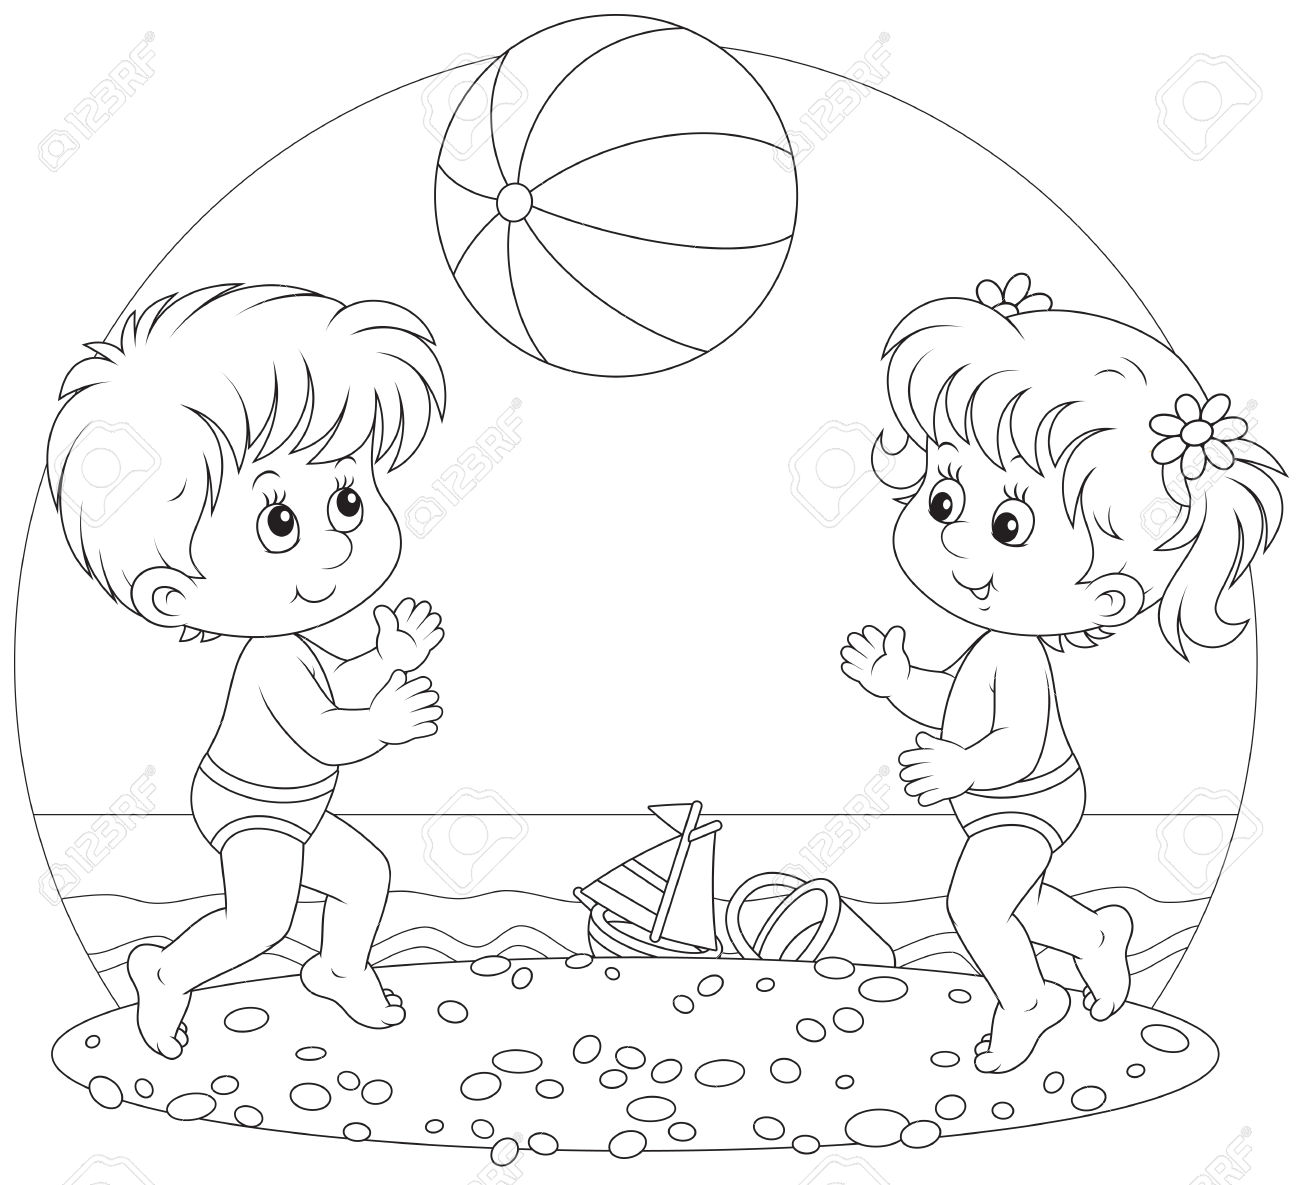 coloring beach clipart black and white clip art for summer scholastic black beach clipart coloring white and